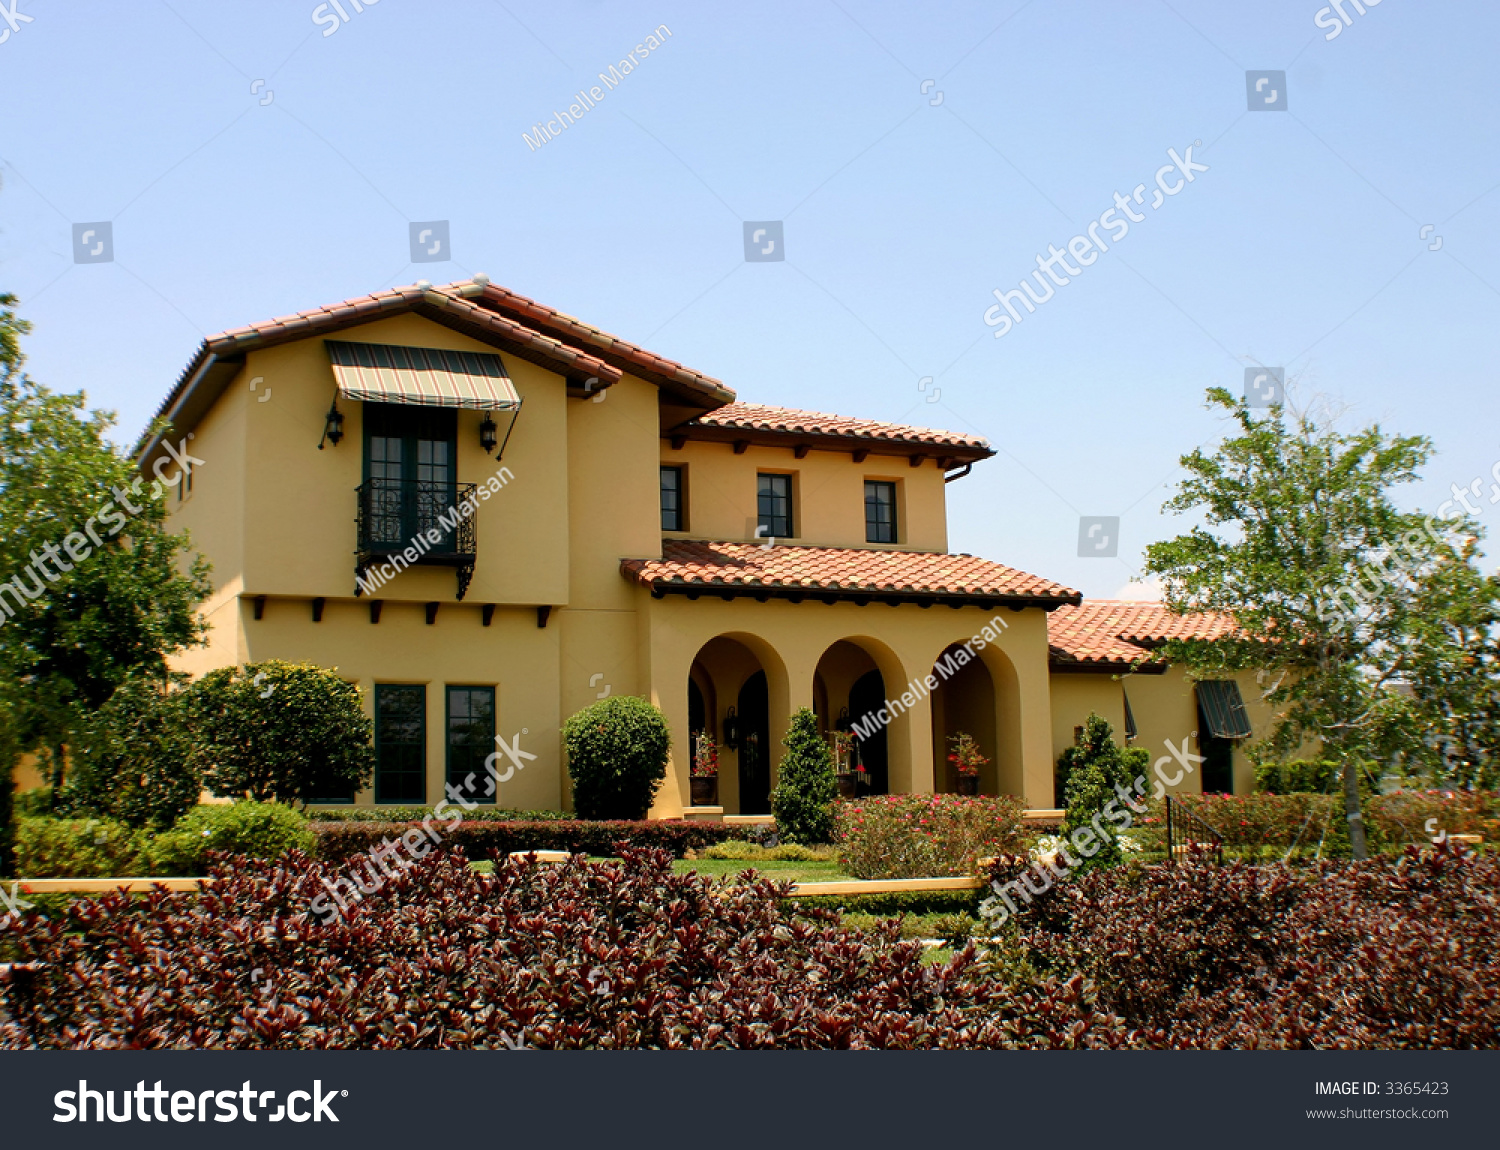 Spanish style home stock photo 3365423 shutterstock for Spanish style shutters